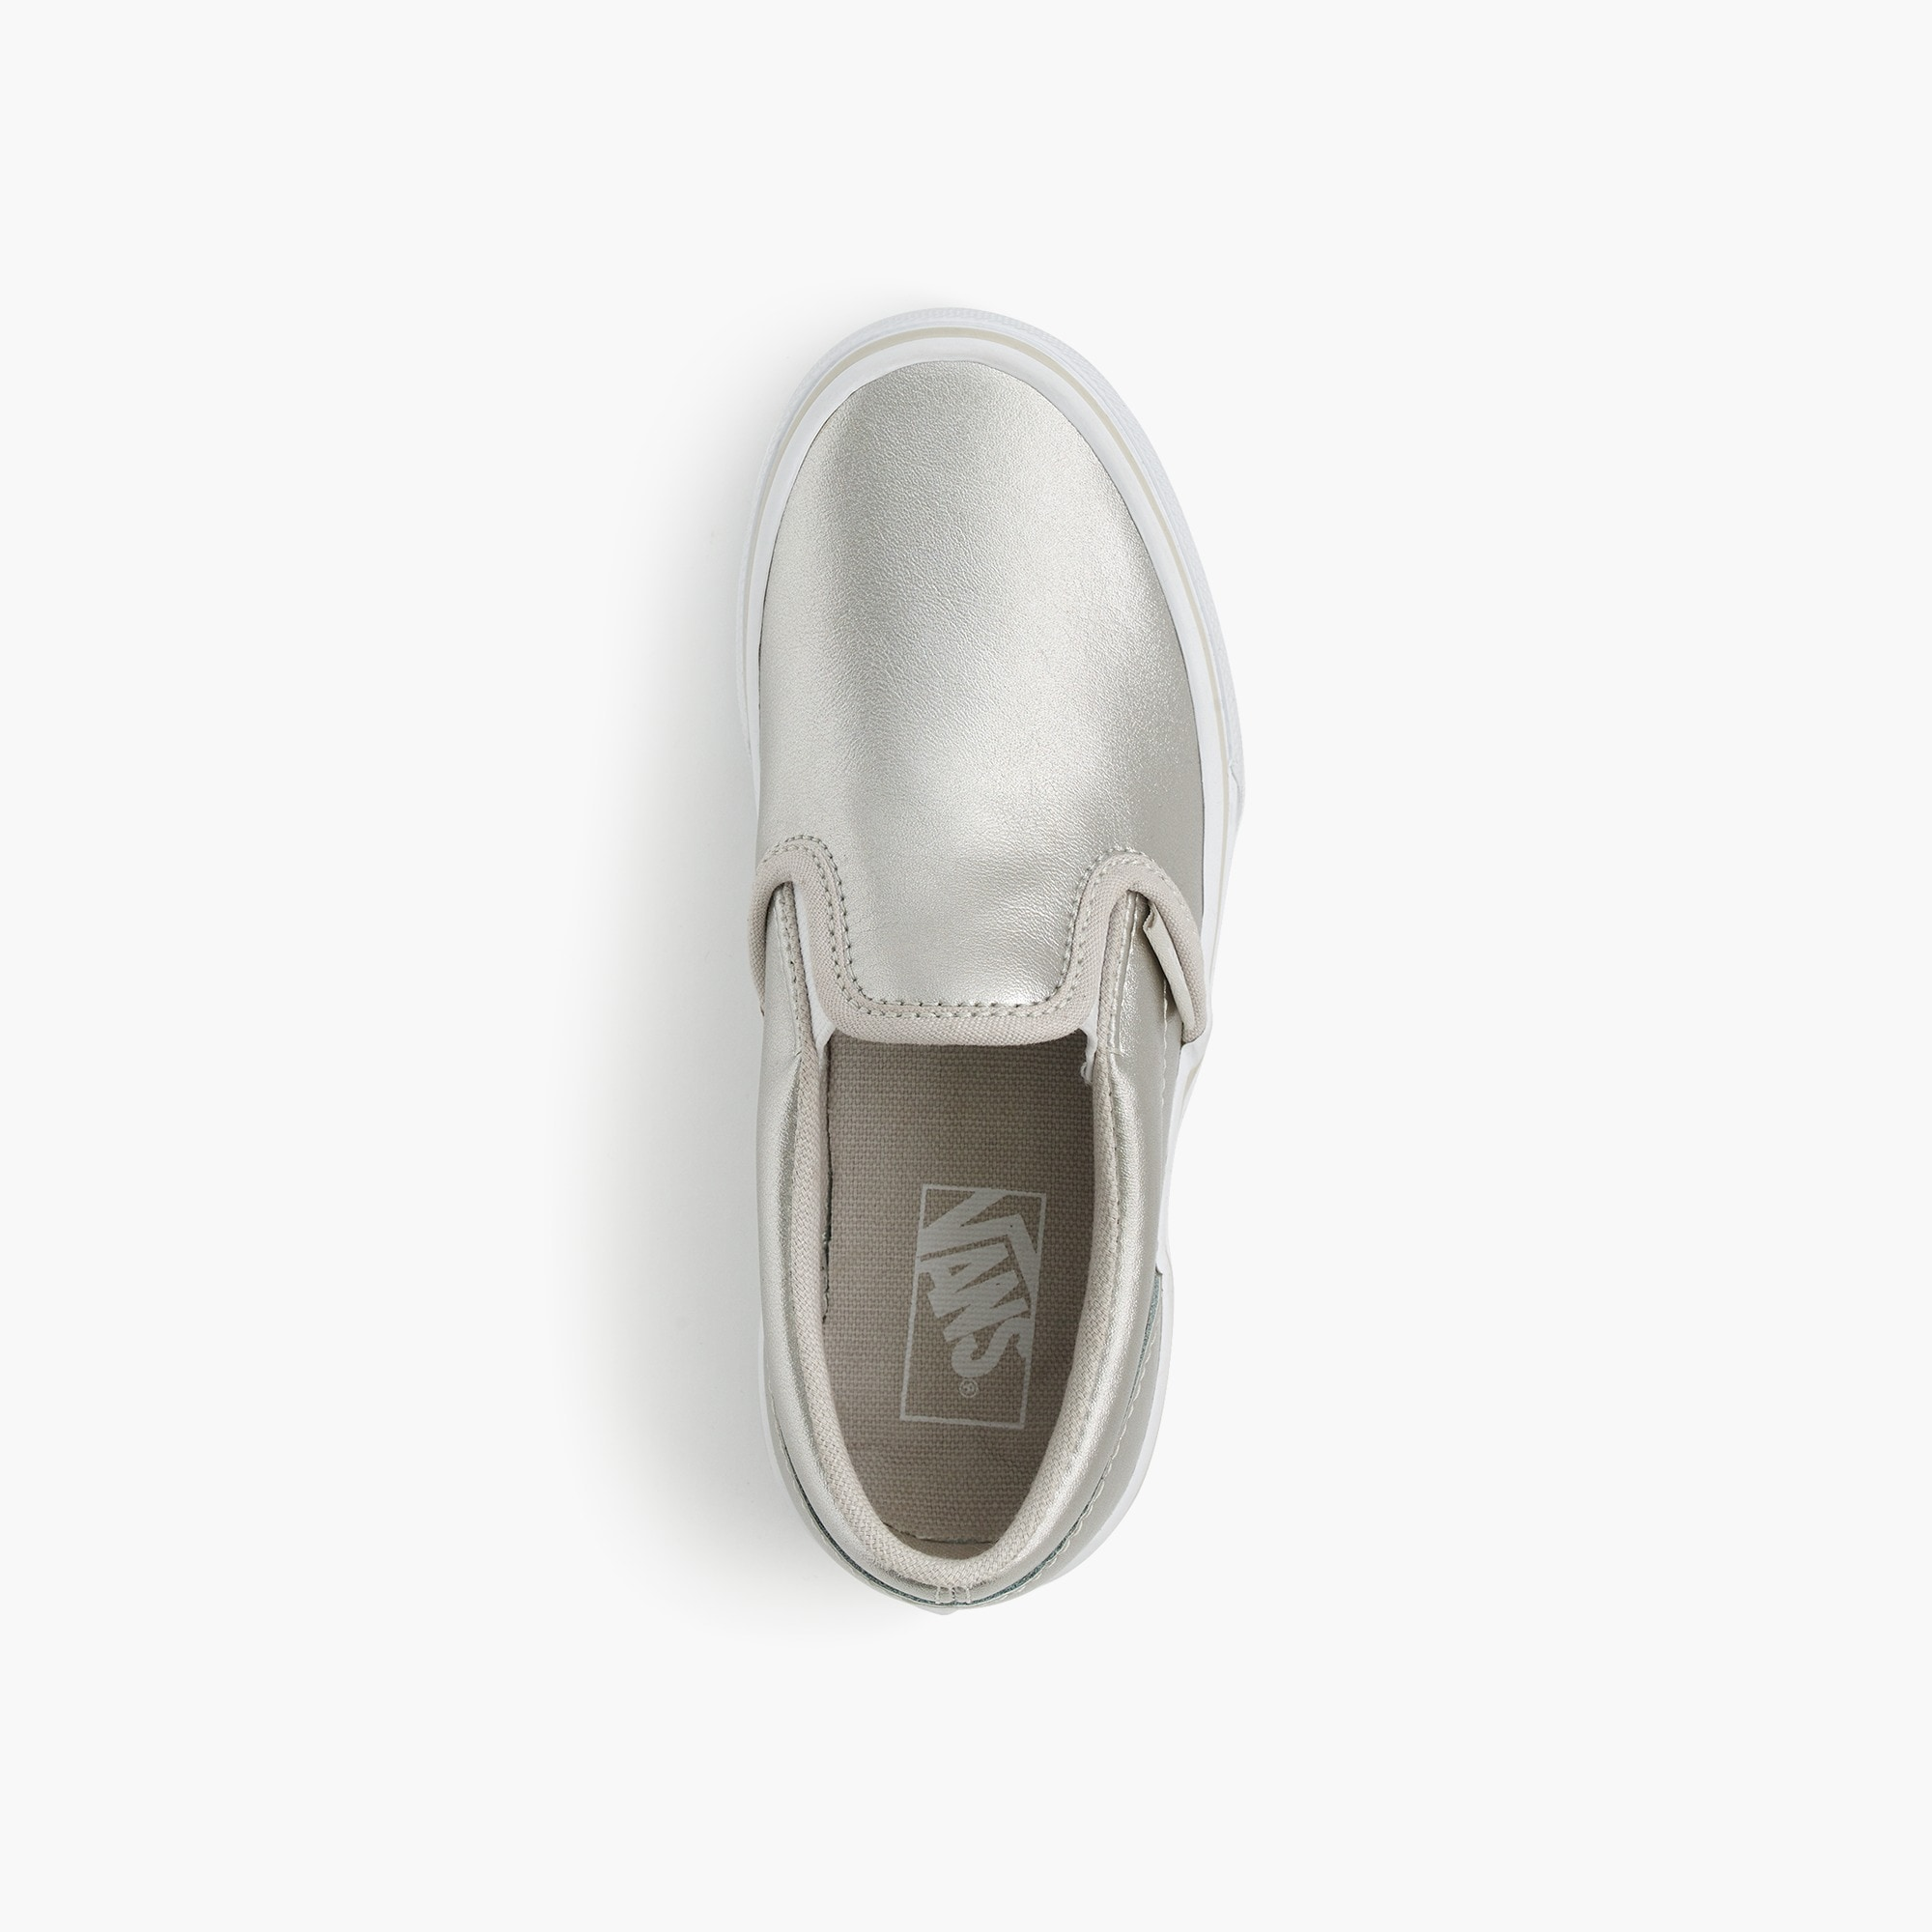 Image 2 for Girls' Vans® classic slip-on sneakers